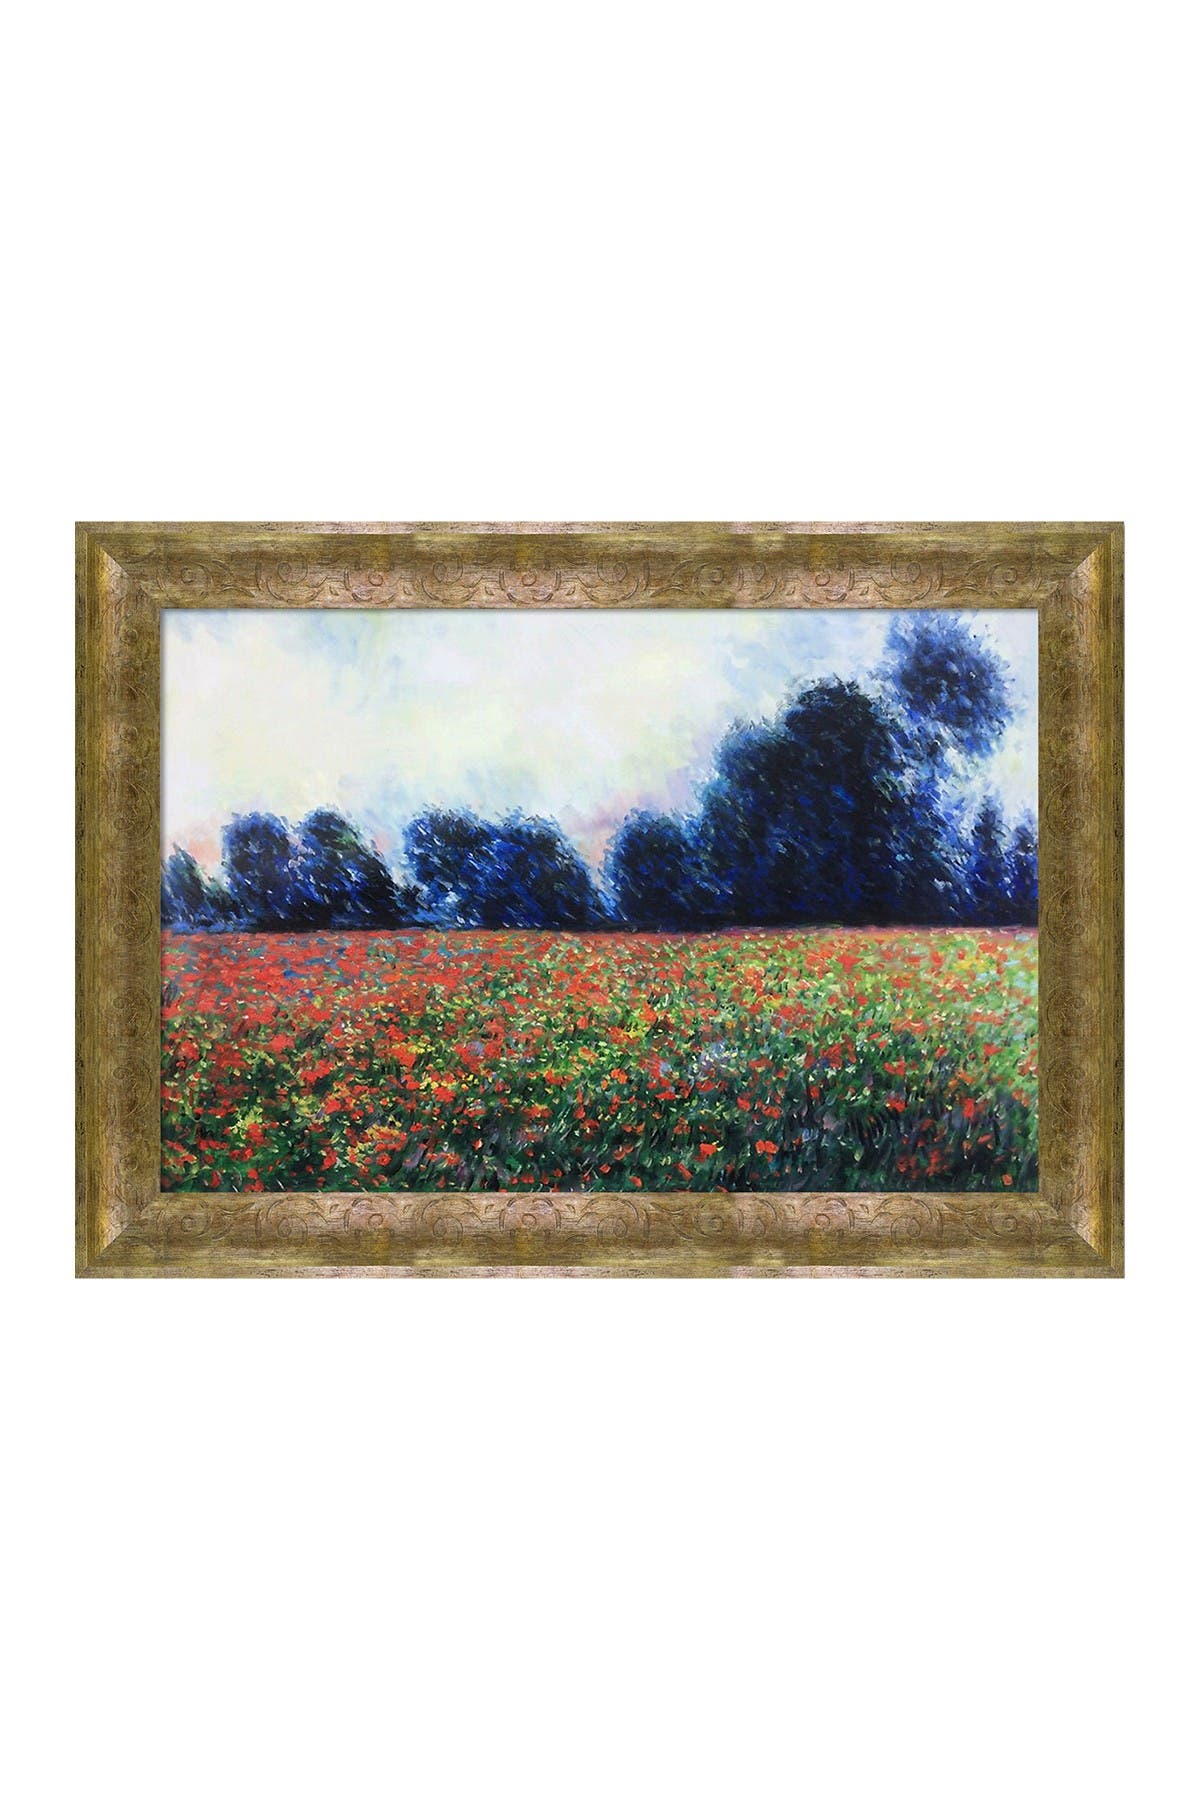 Poppies at Giverny - Framed Oil Reproduction of an Original Painting by Claude Monet at Nordstrom Rack